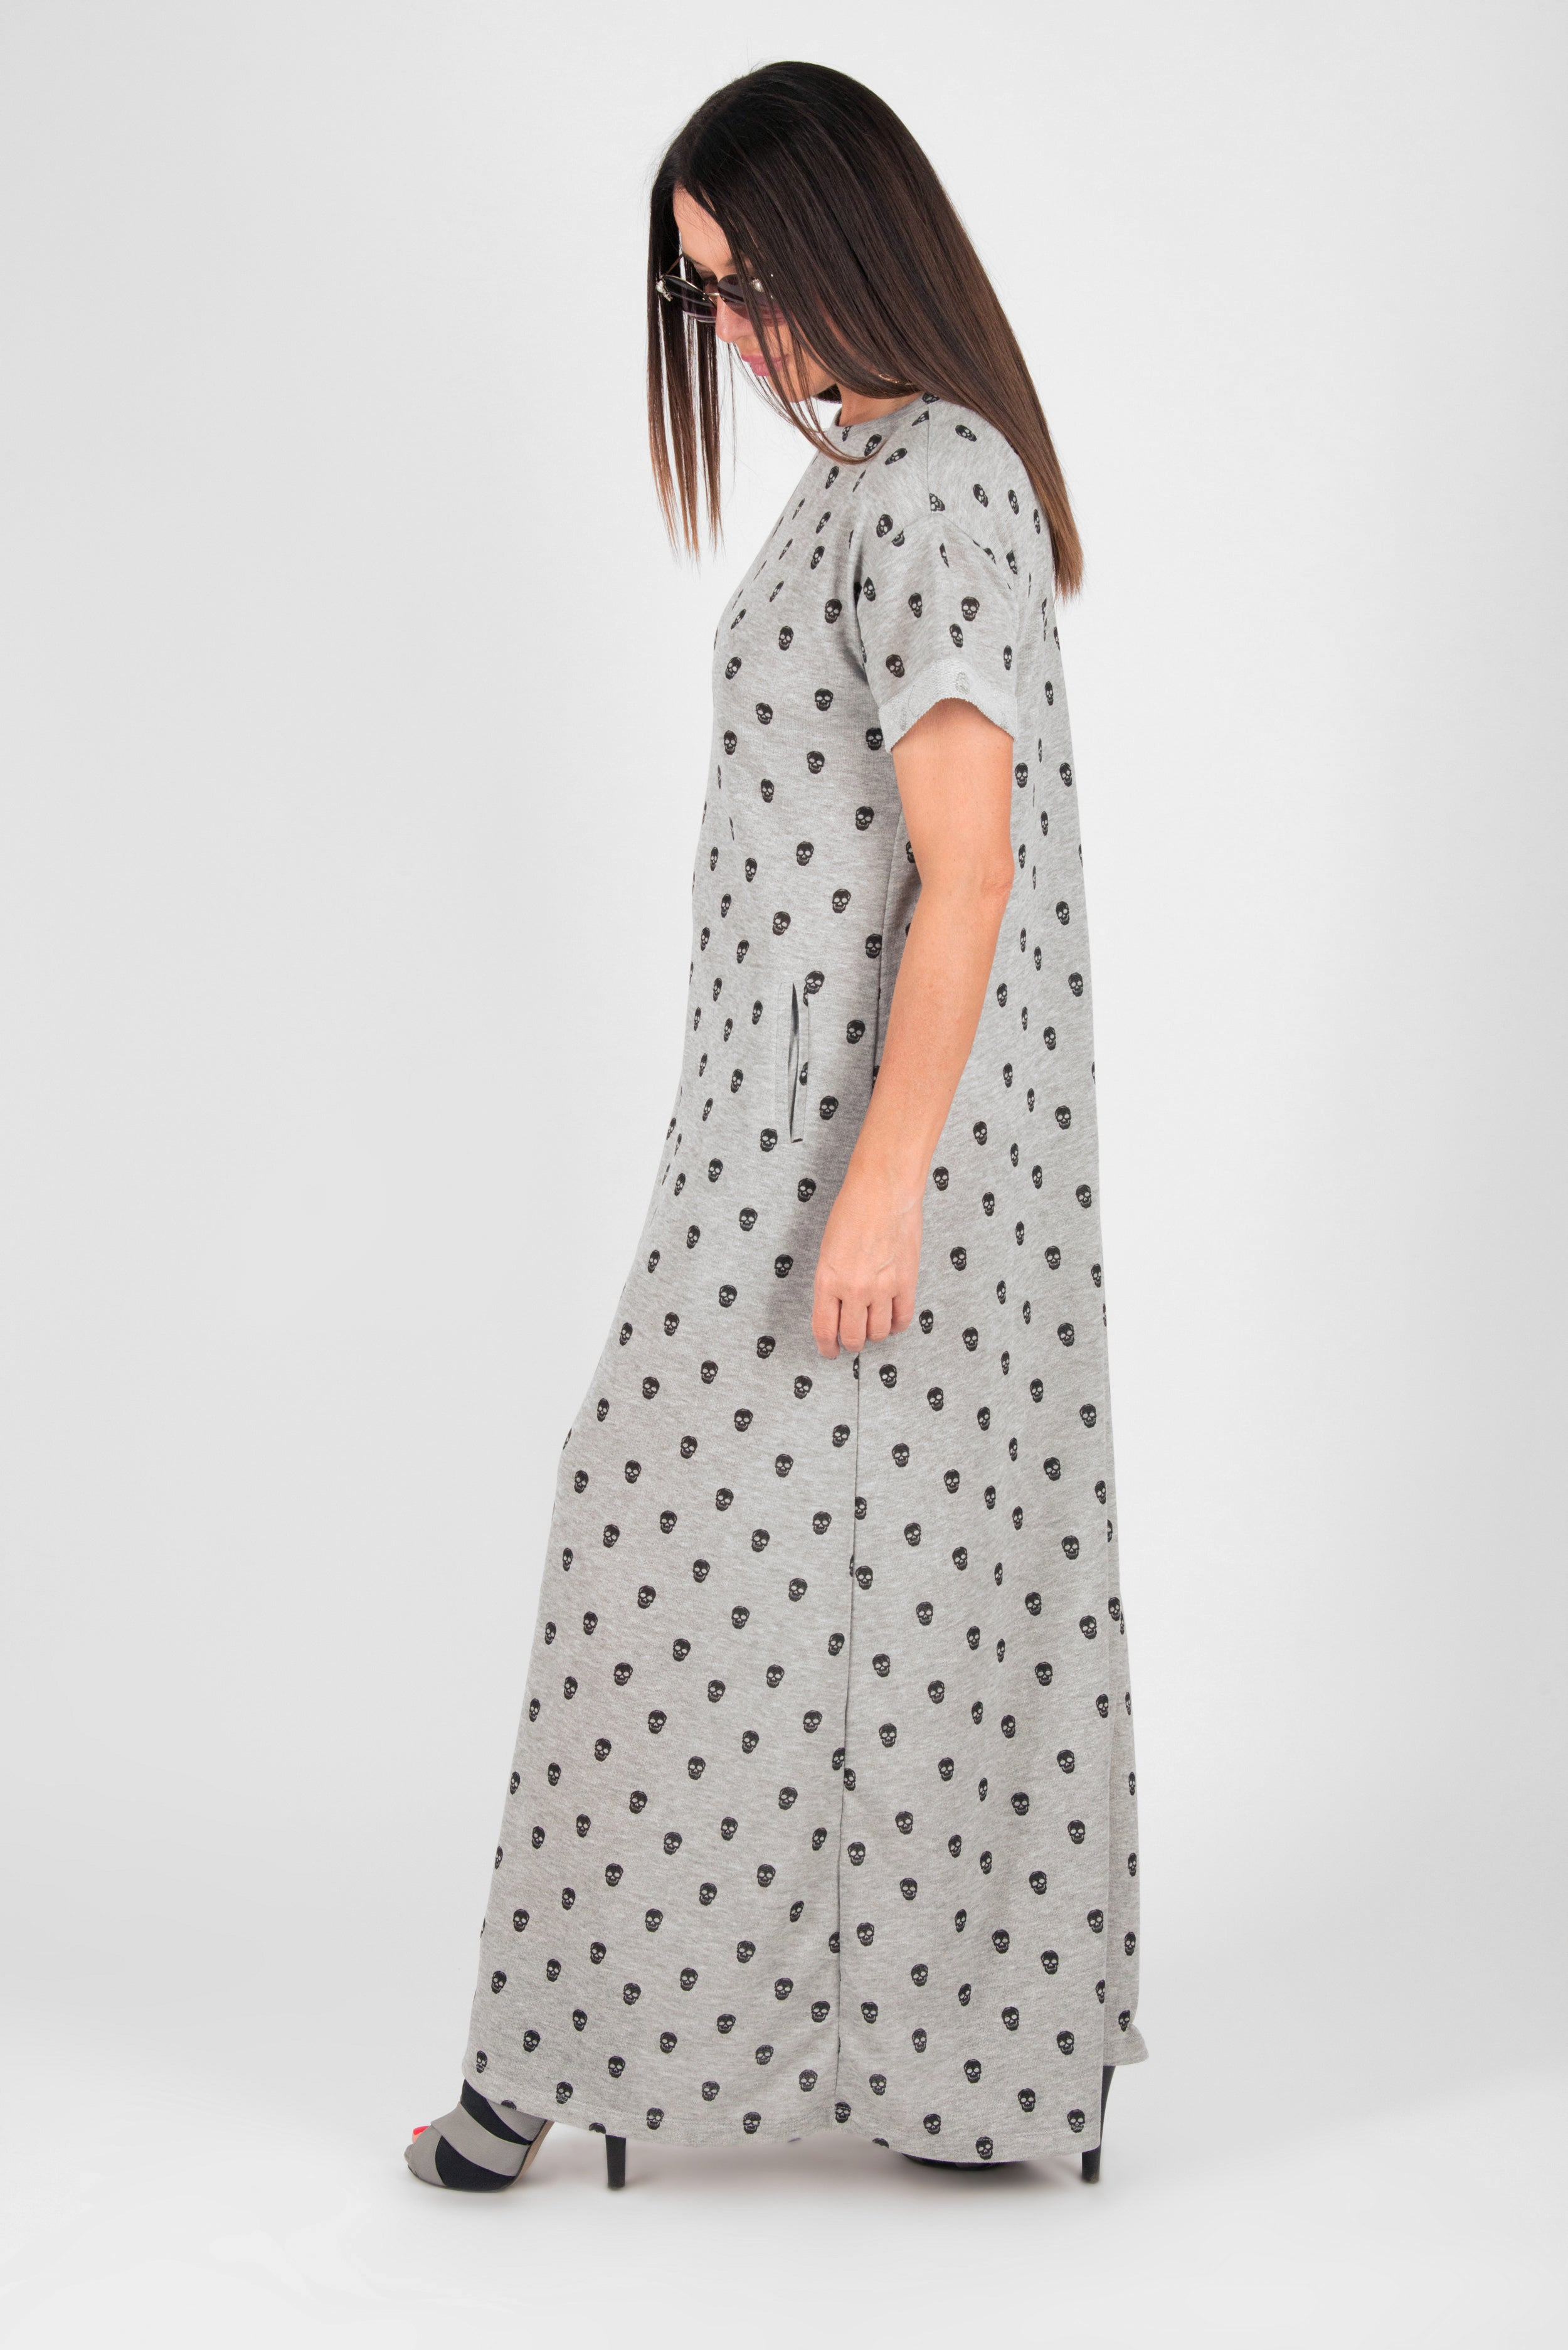 Light Gray Skull print Summer Dress, New Arrival